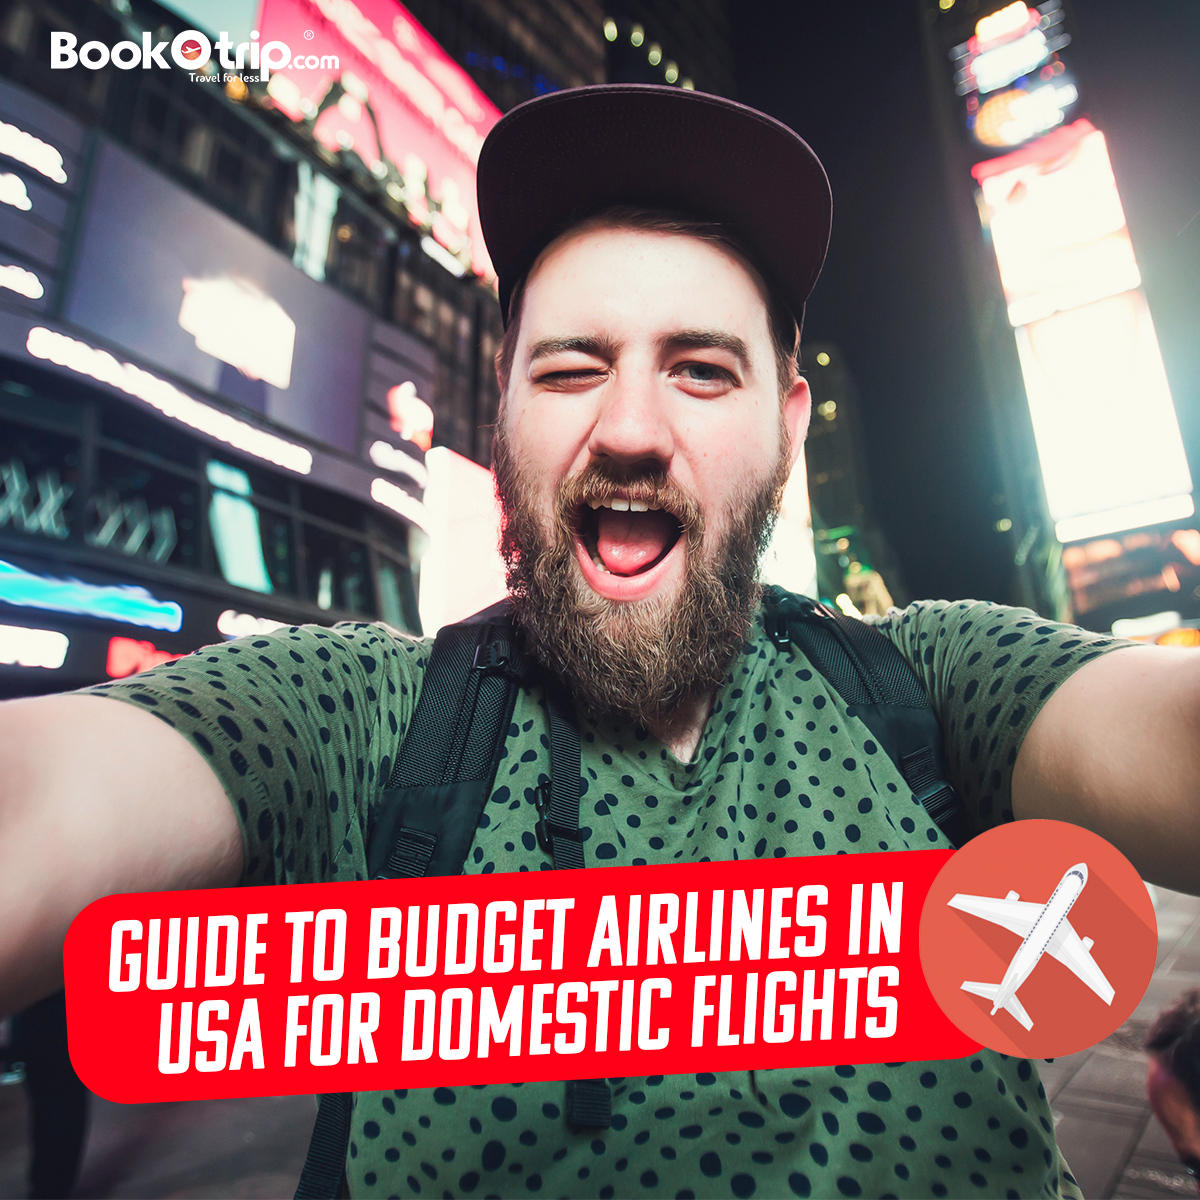 Guide To Budget Airlines In USA For Domestic Flights